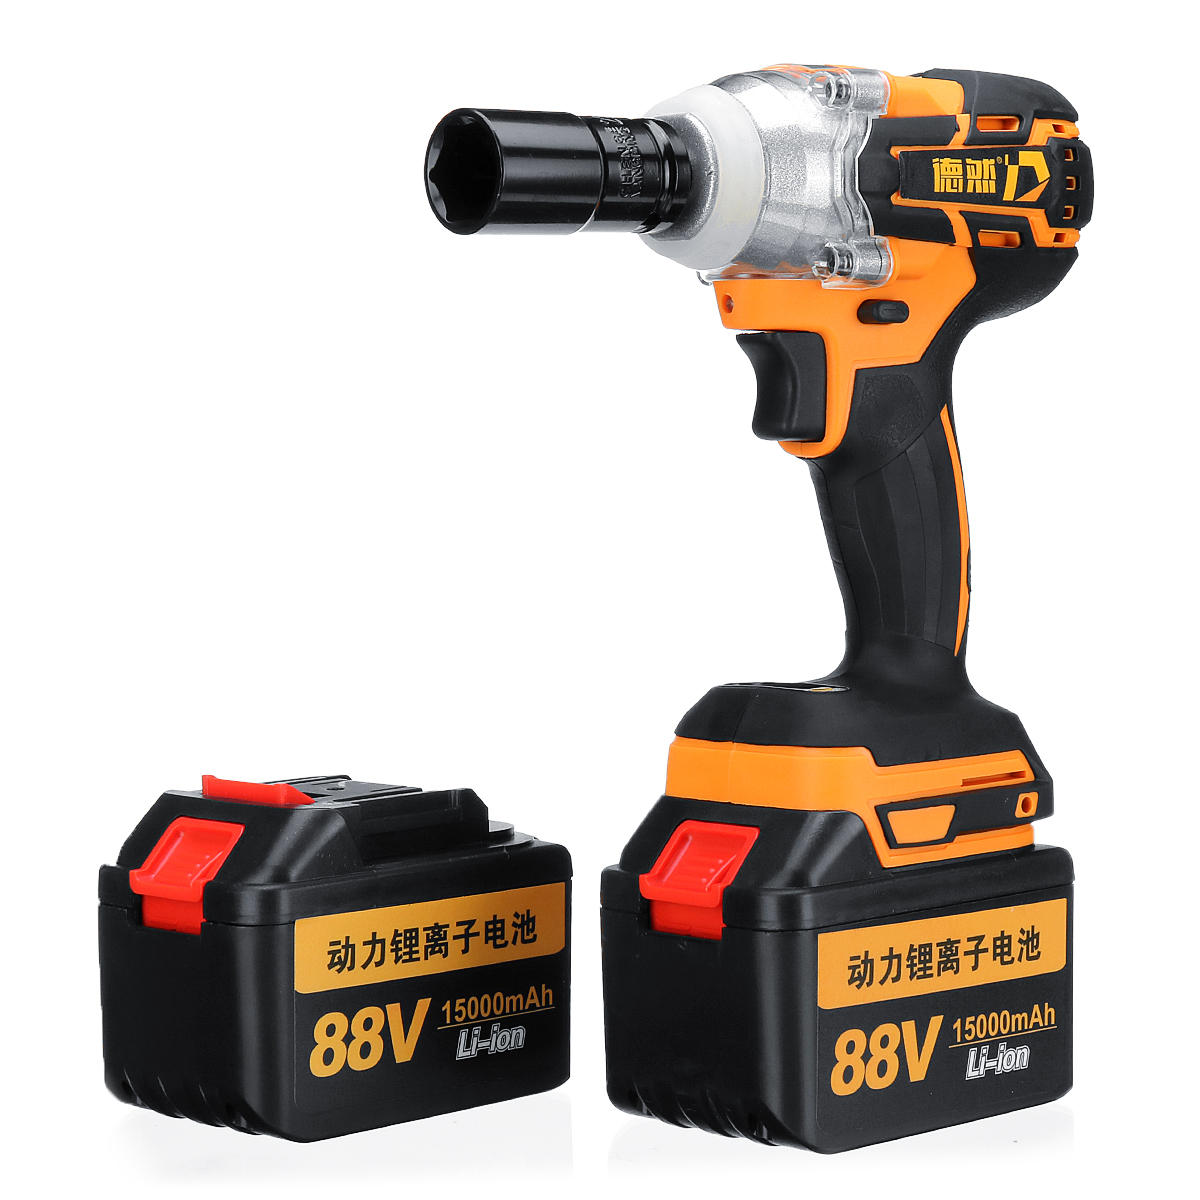 88V 15000mAh Cordless Brushless Electric Impact Wrench W/ 2 Batteries Woodworking Power Tool